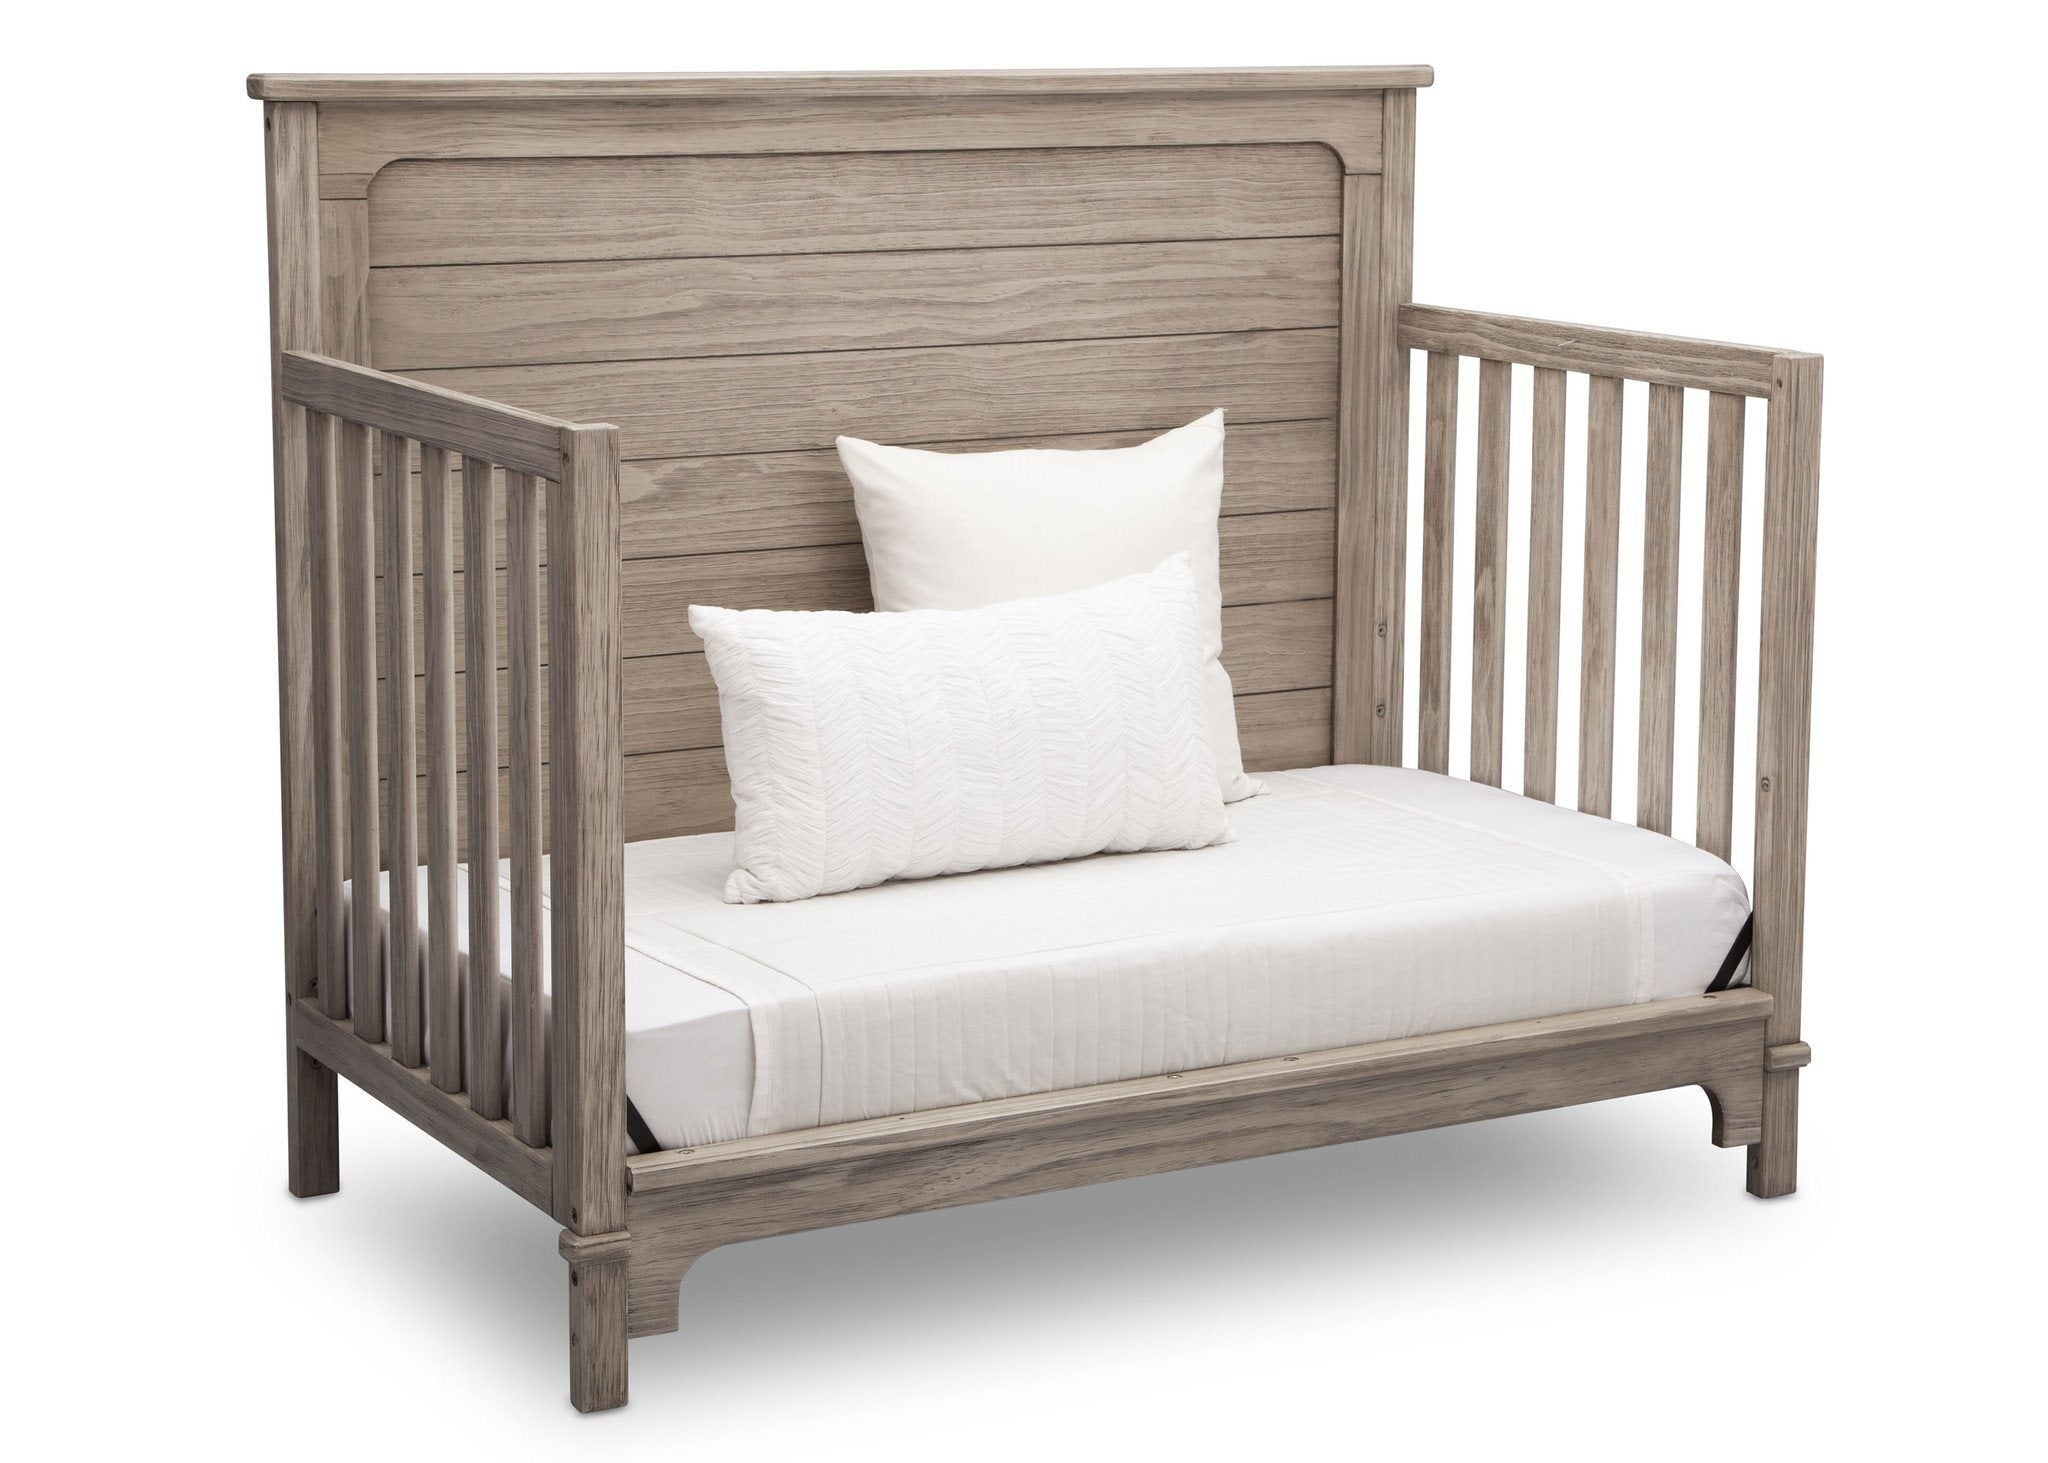 ... Simmons Kids Rustic White (119) Monterey Crib U0027Nu0027 More, DayBed  Conversion ...